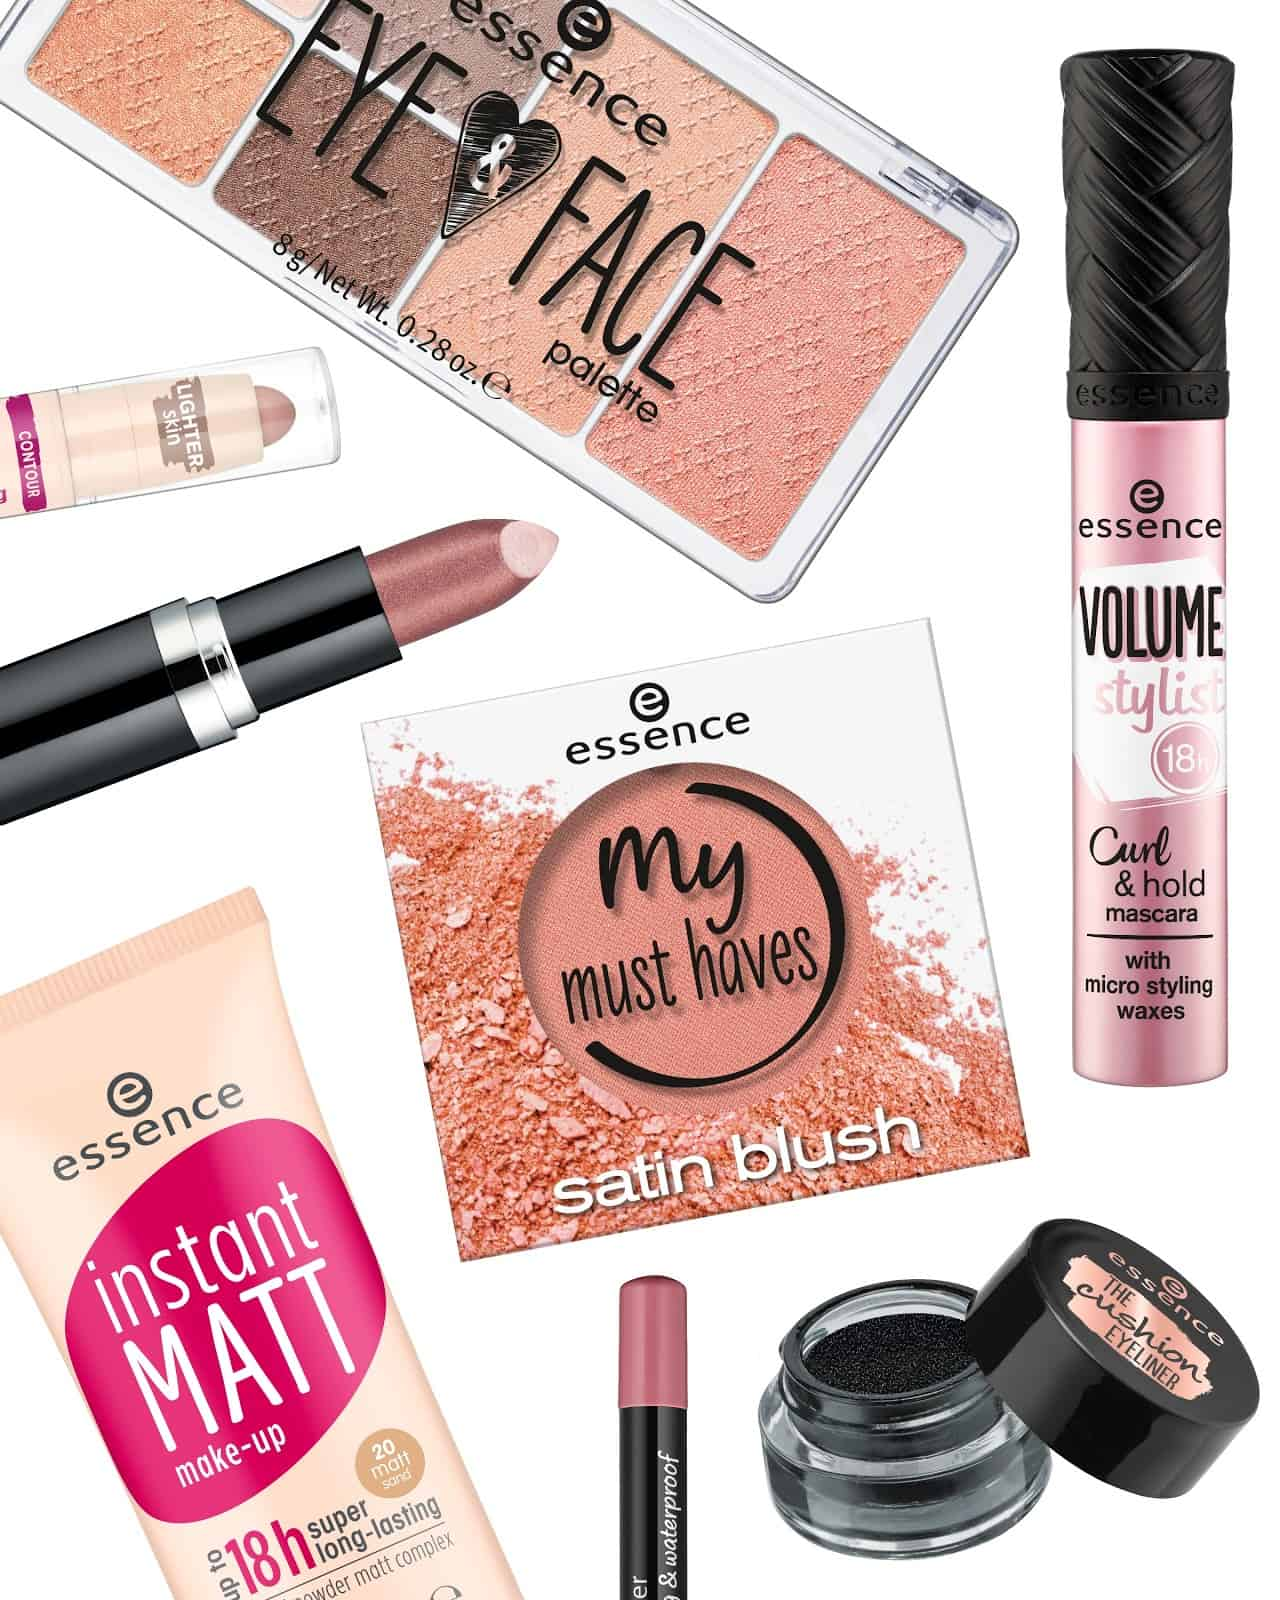 Makeup Products: 8 Cruelty-Free And Vegan Makeup Products You Never Knew About